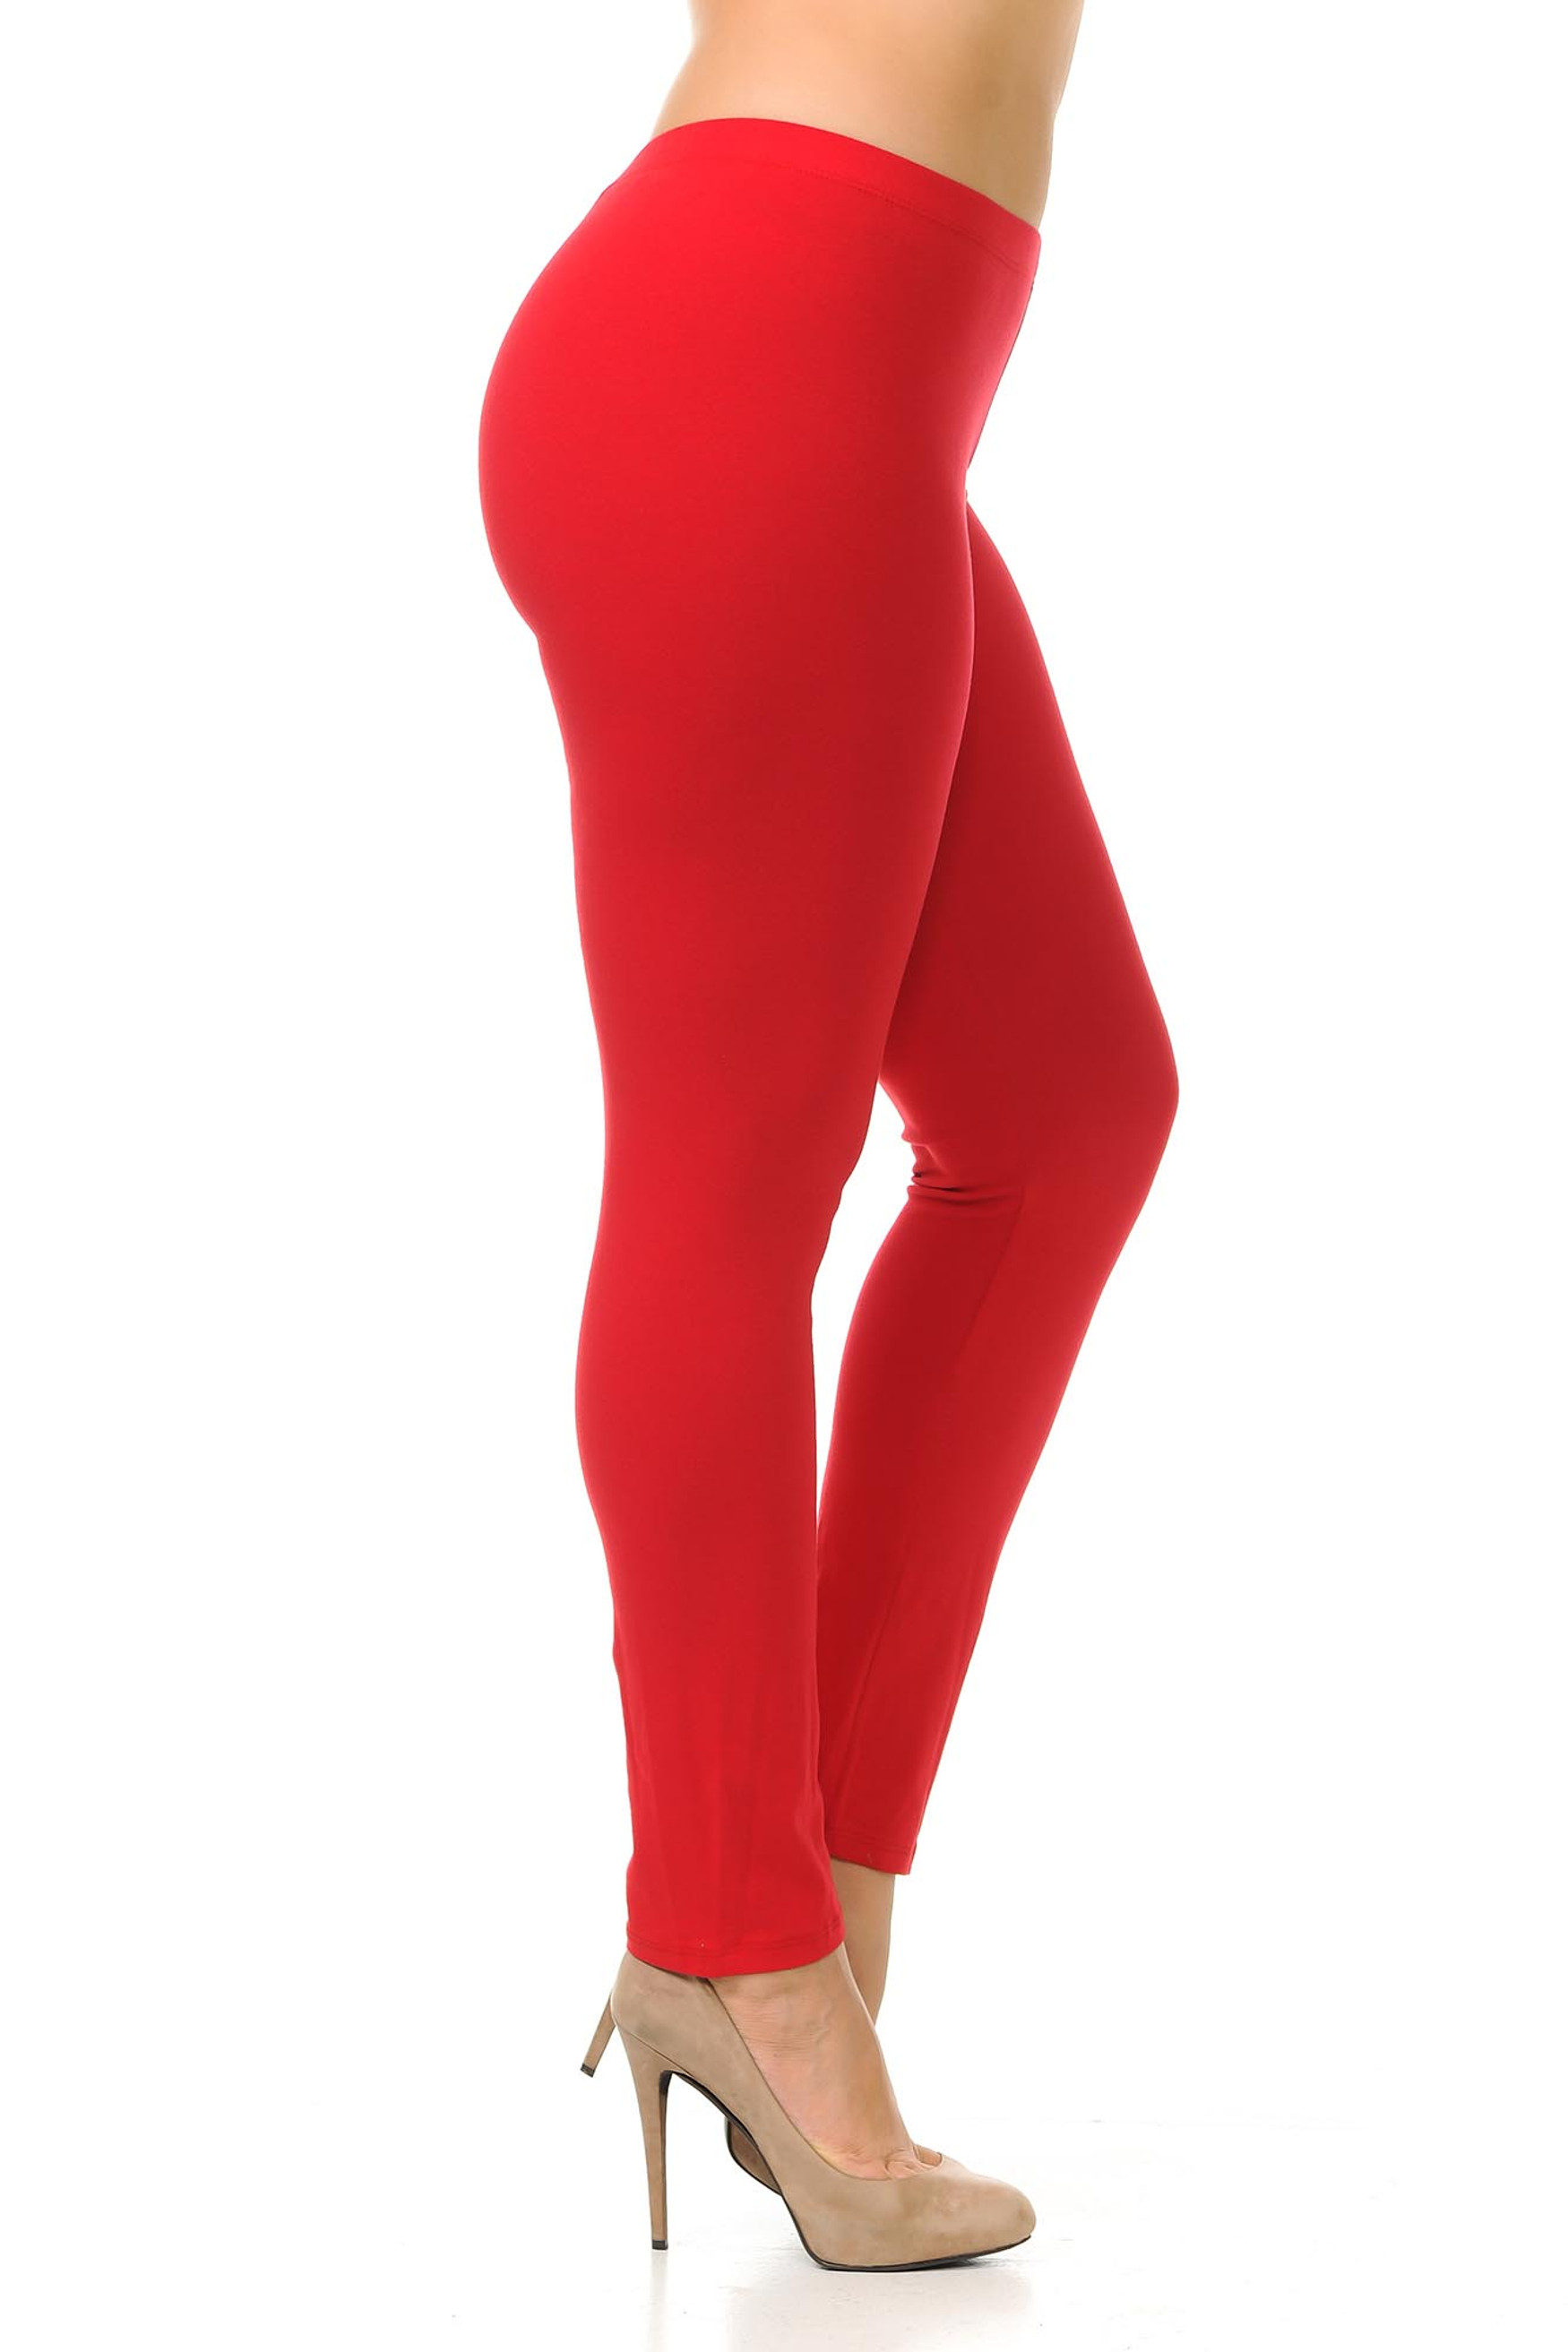 Right side view of red plus size USA Cotton Full Length Leggings.